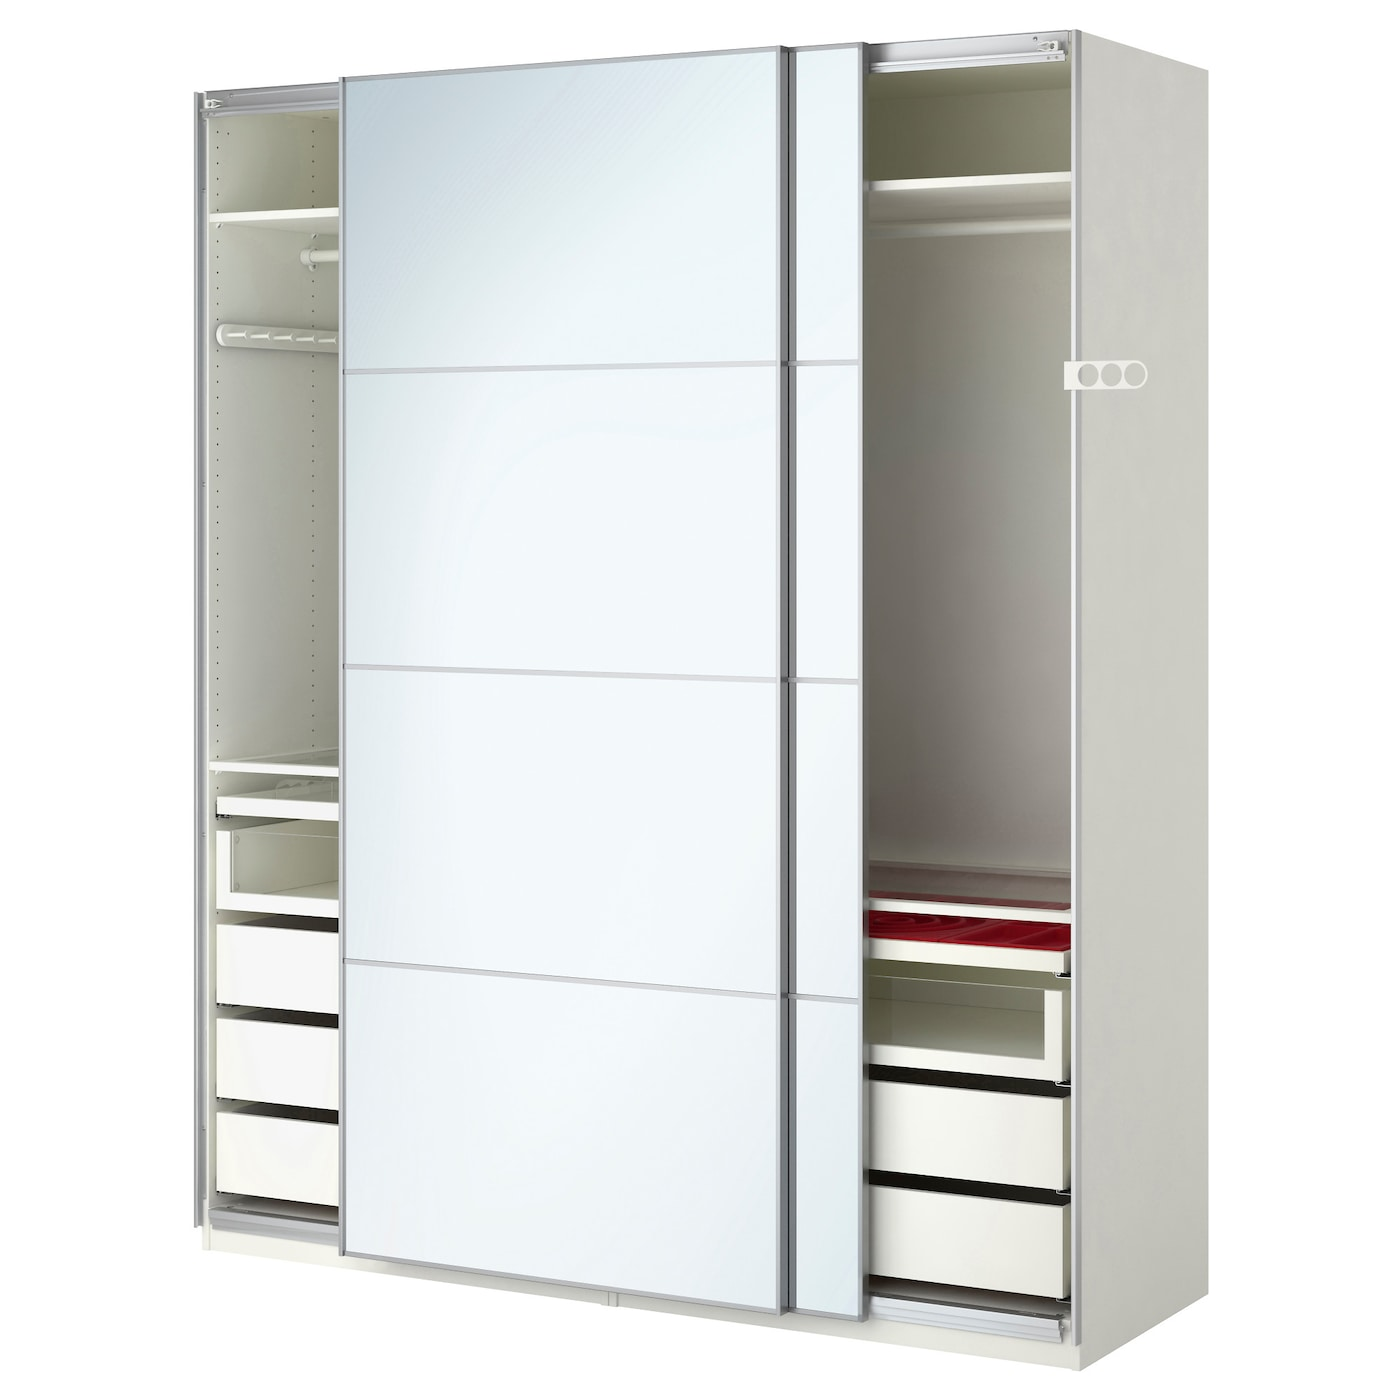 Pax wardrobe white auli mirror glass 200x66x236 cm ikea for Porte miroir ikea